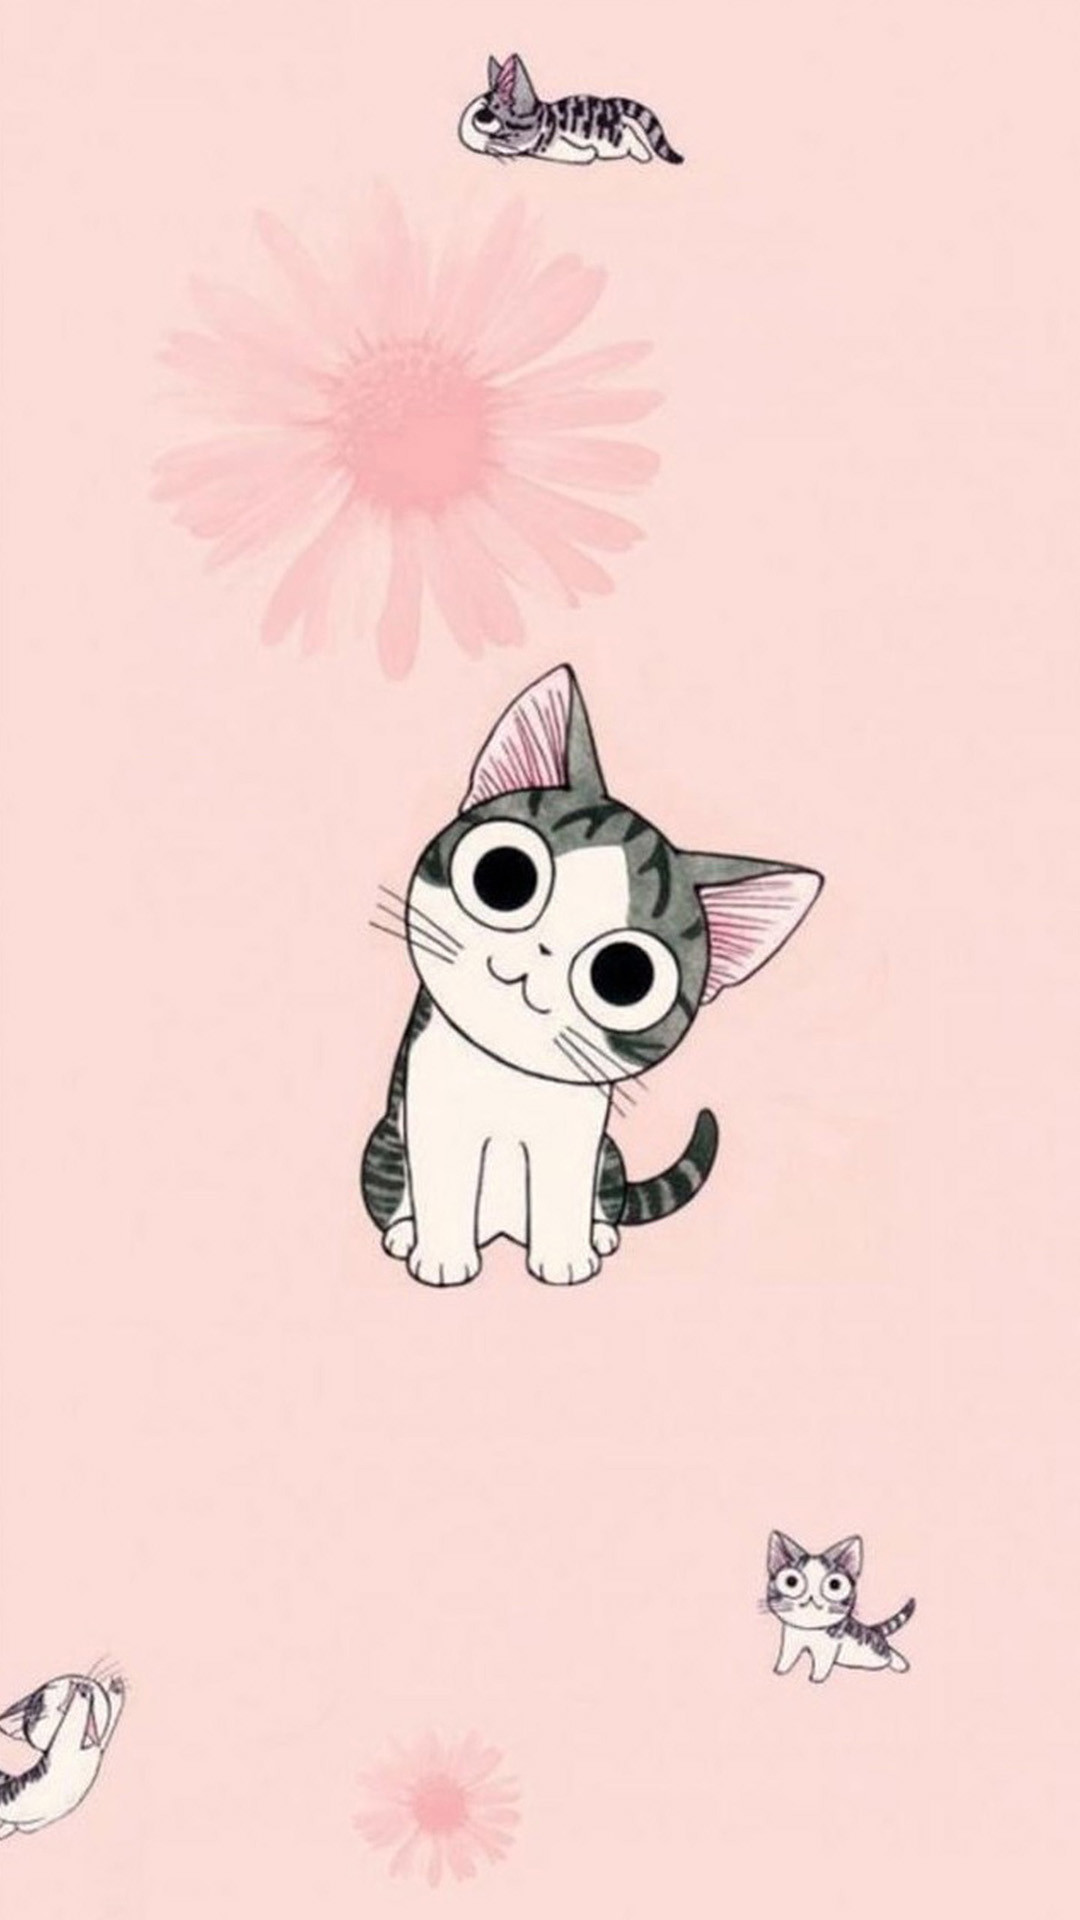 1080x1920 Funny Cartoon Cat iPhone Wallpaper Wallpaper